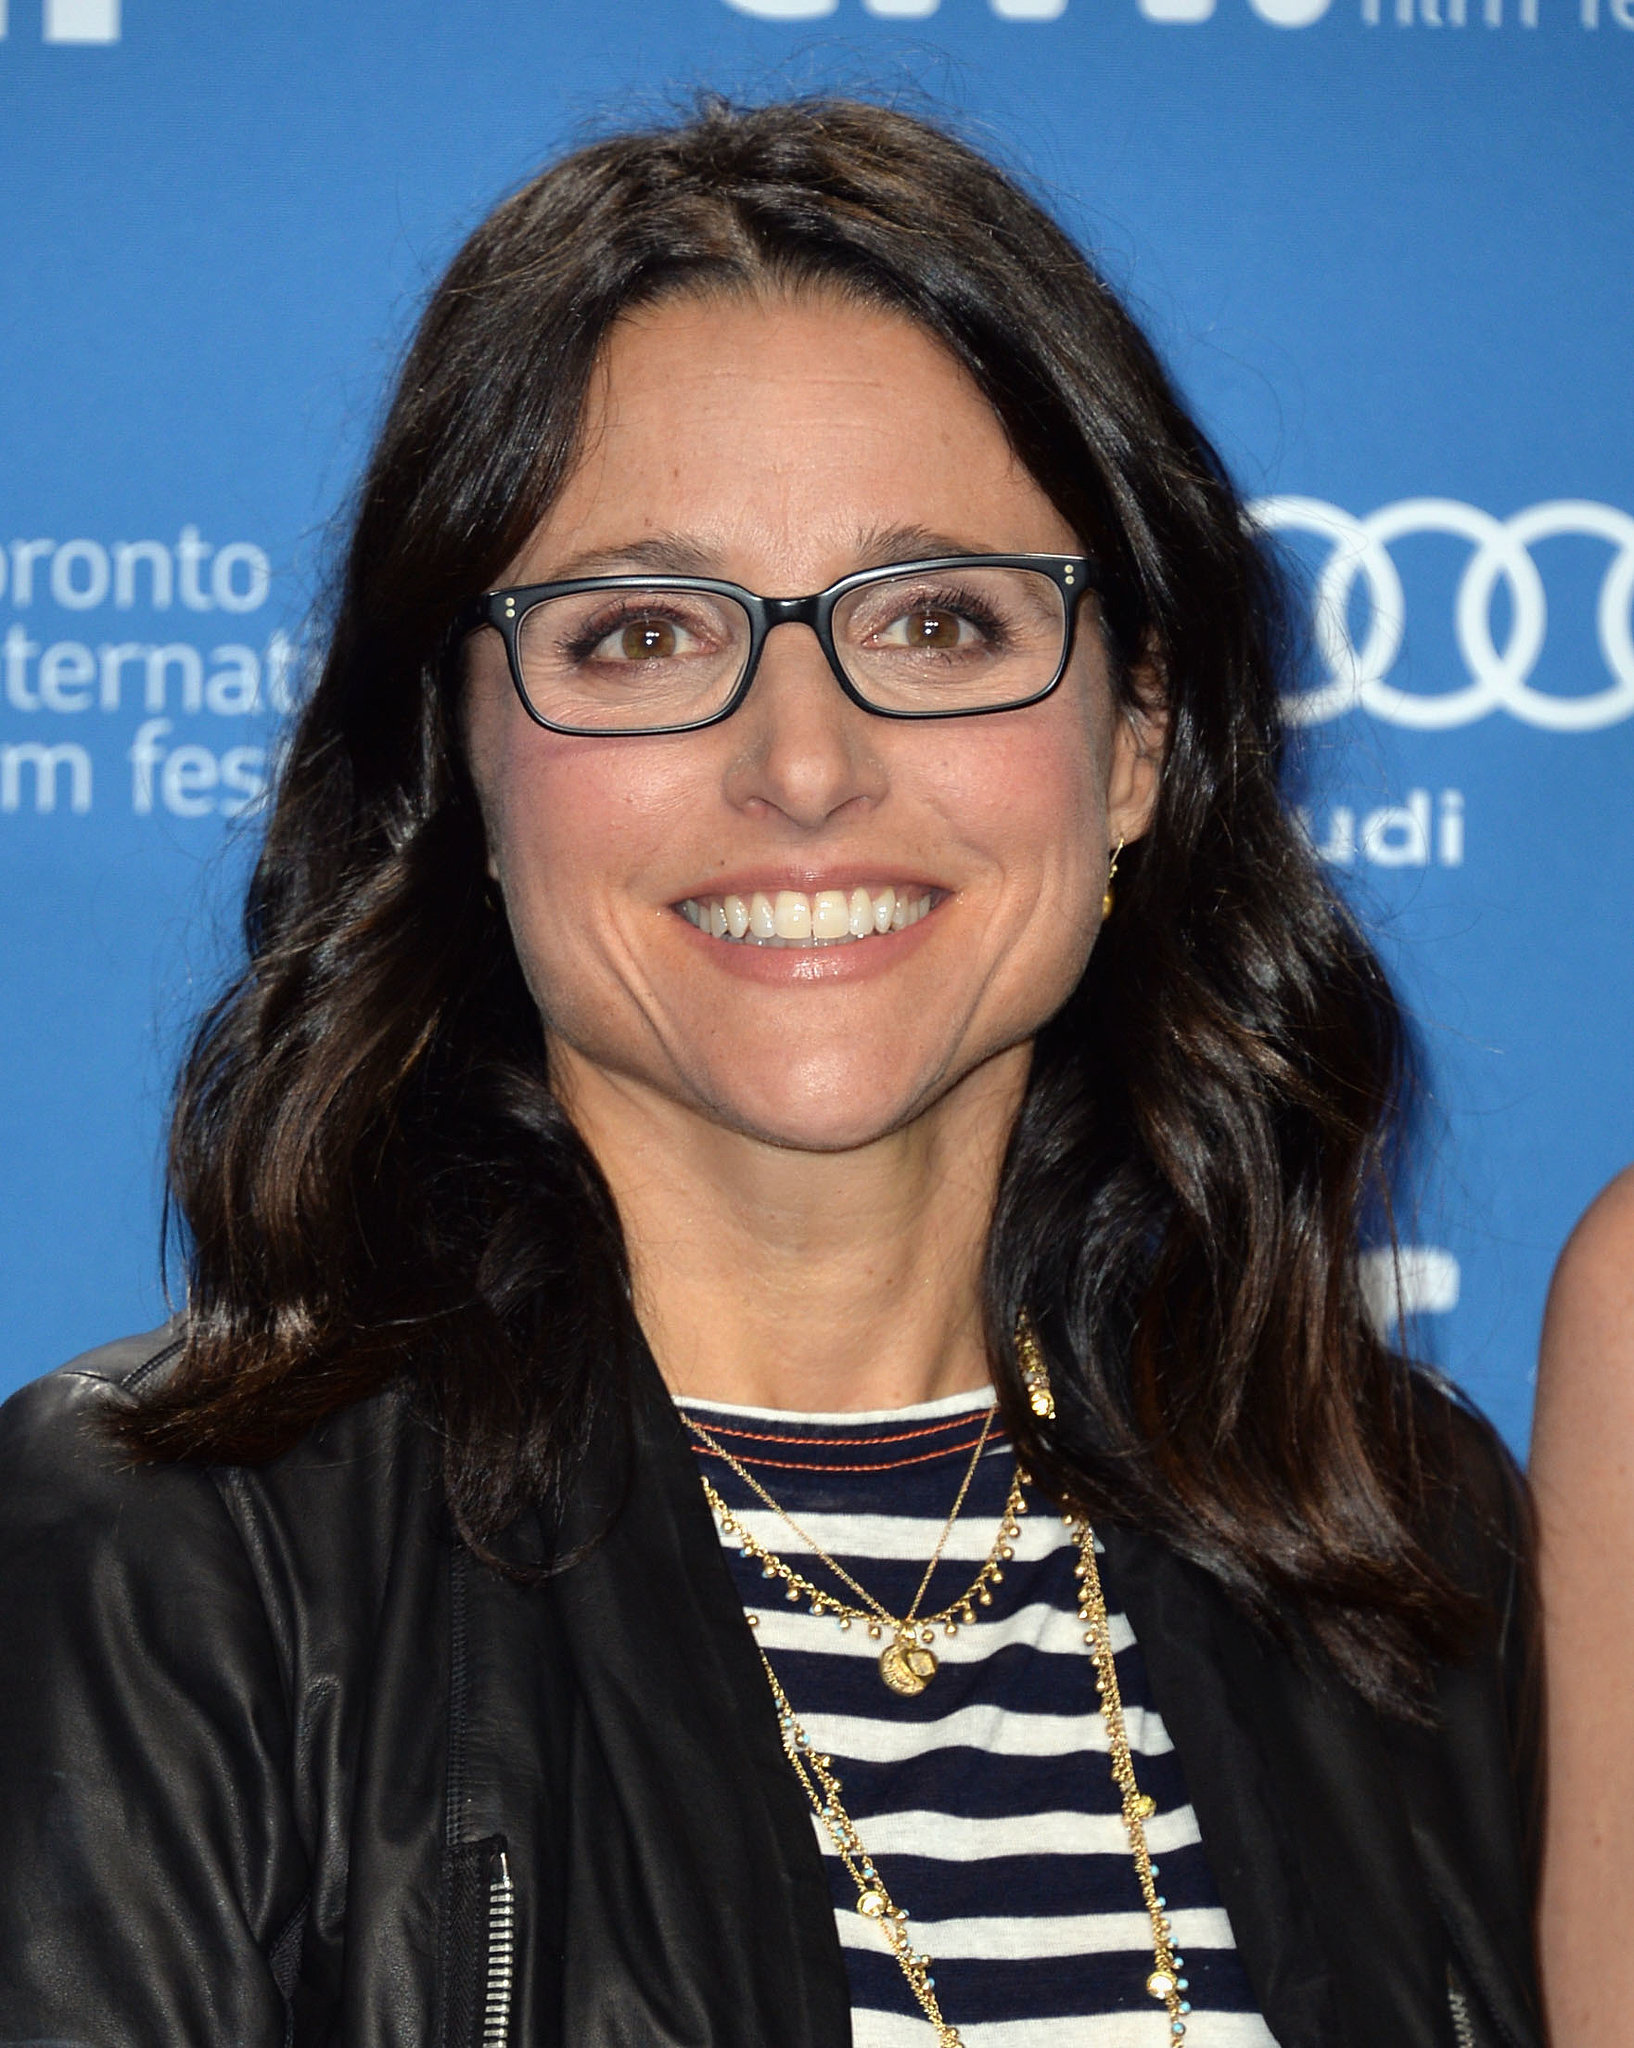 Julia Louis-Dreyfus showed off a beautiful eye-makeup look that peered behind her black-rimmed glasses at the Enough Said press conference.